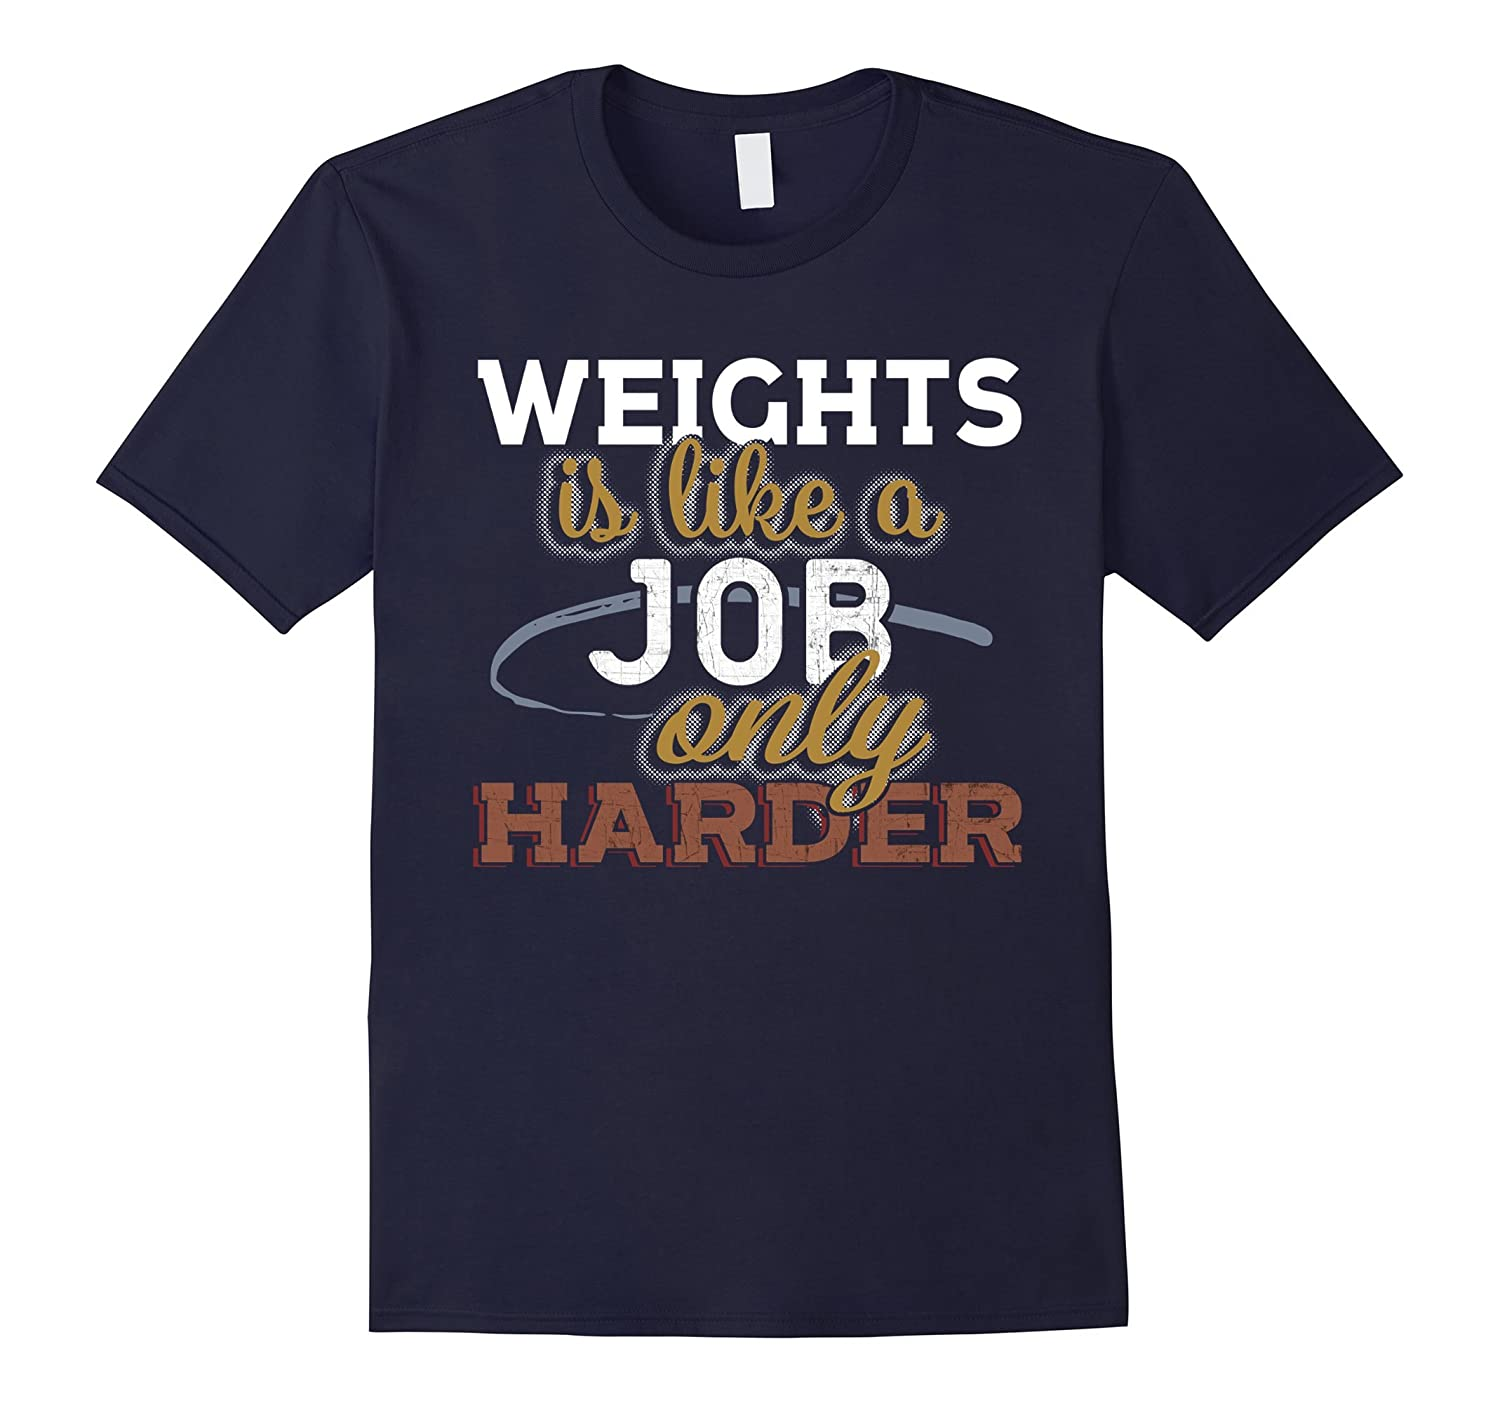 Weights is Just Like a Job Only Harder T Shirt-TJ